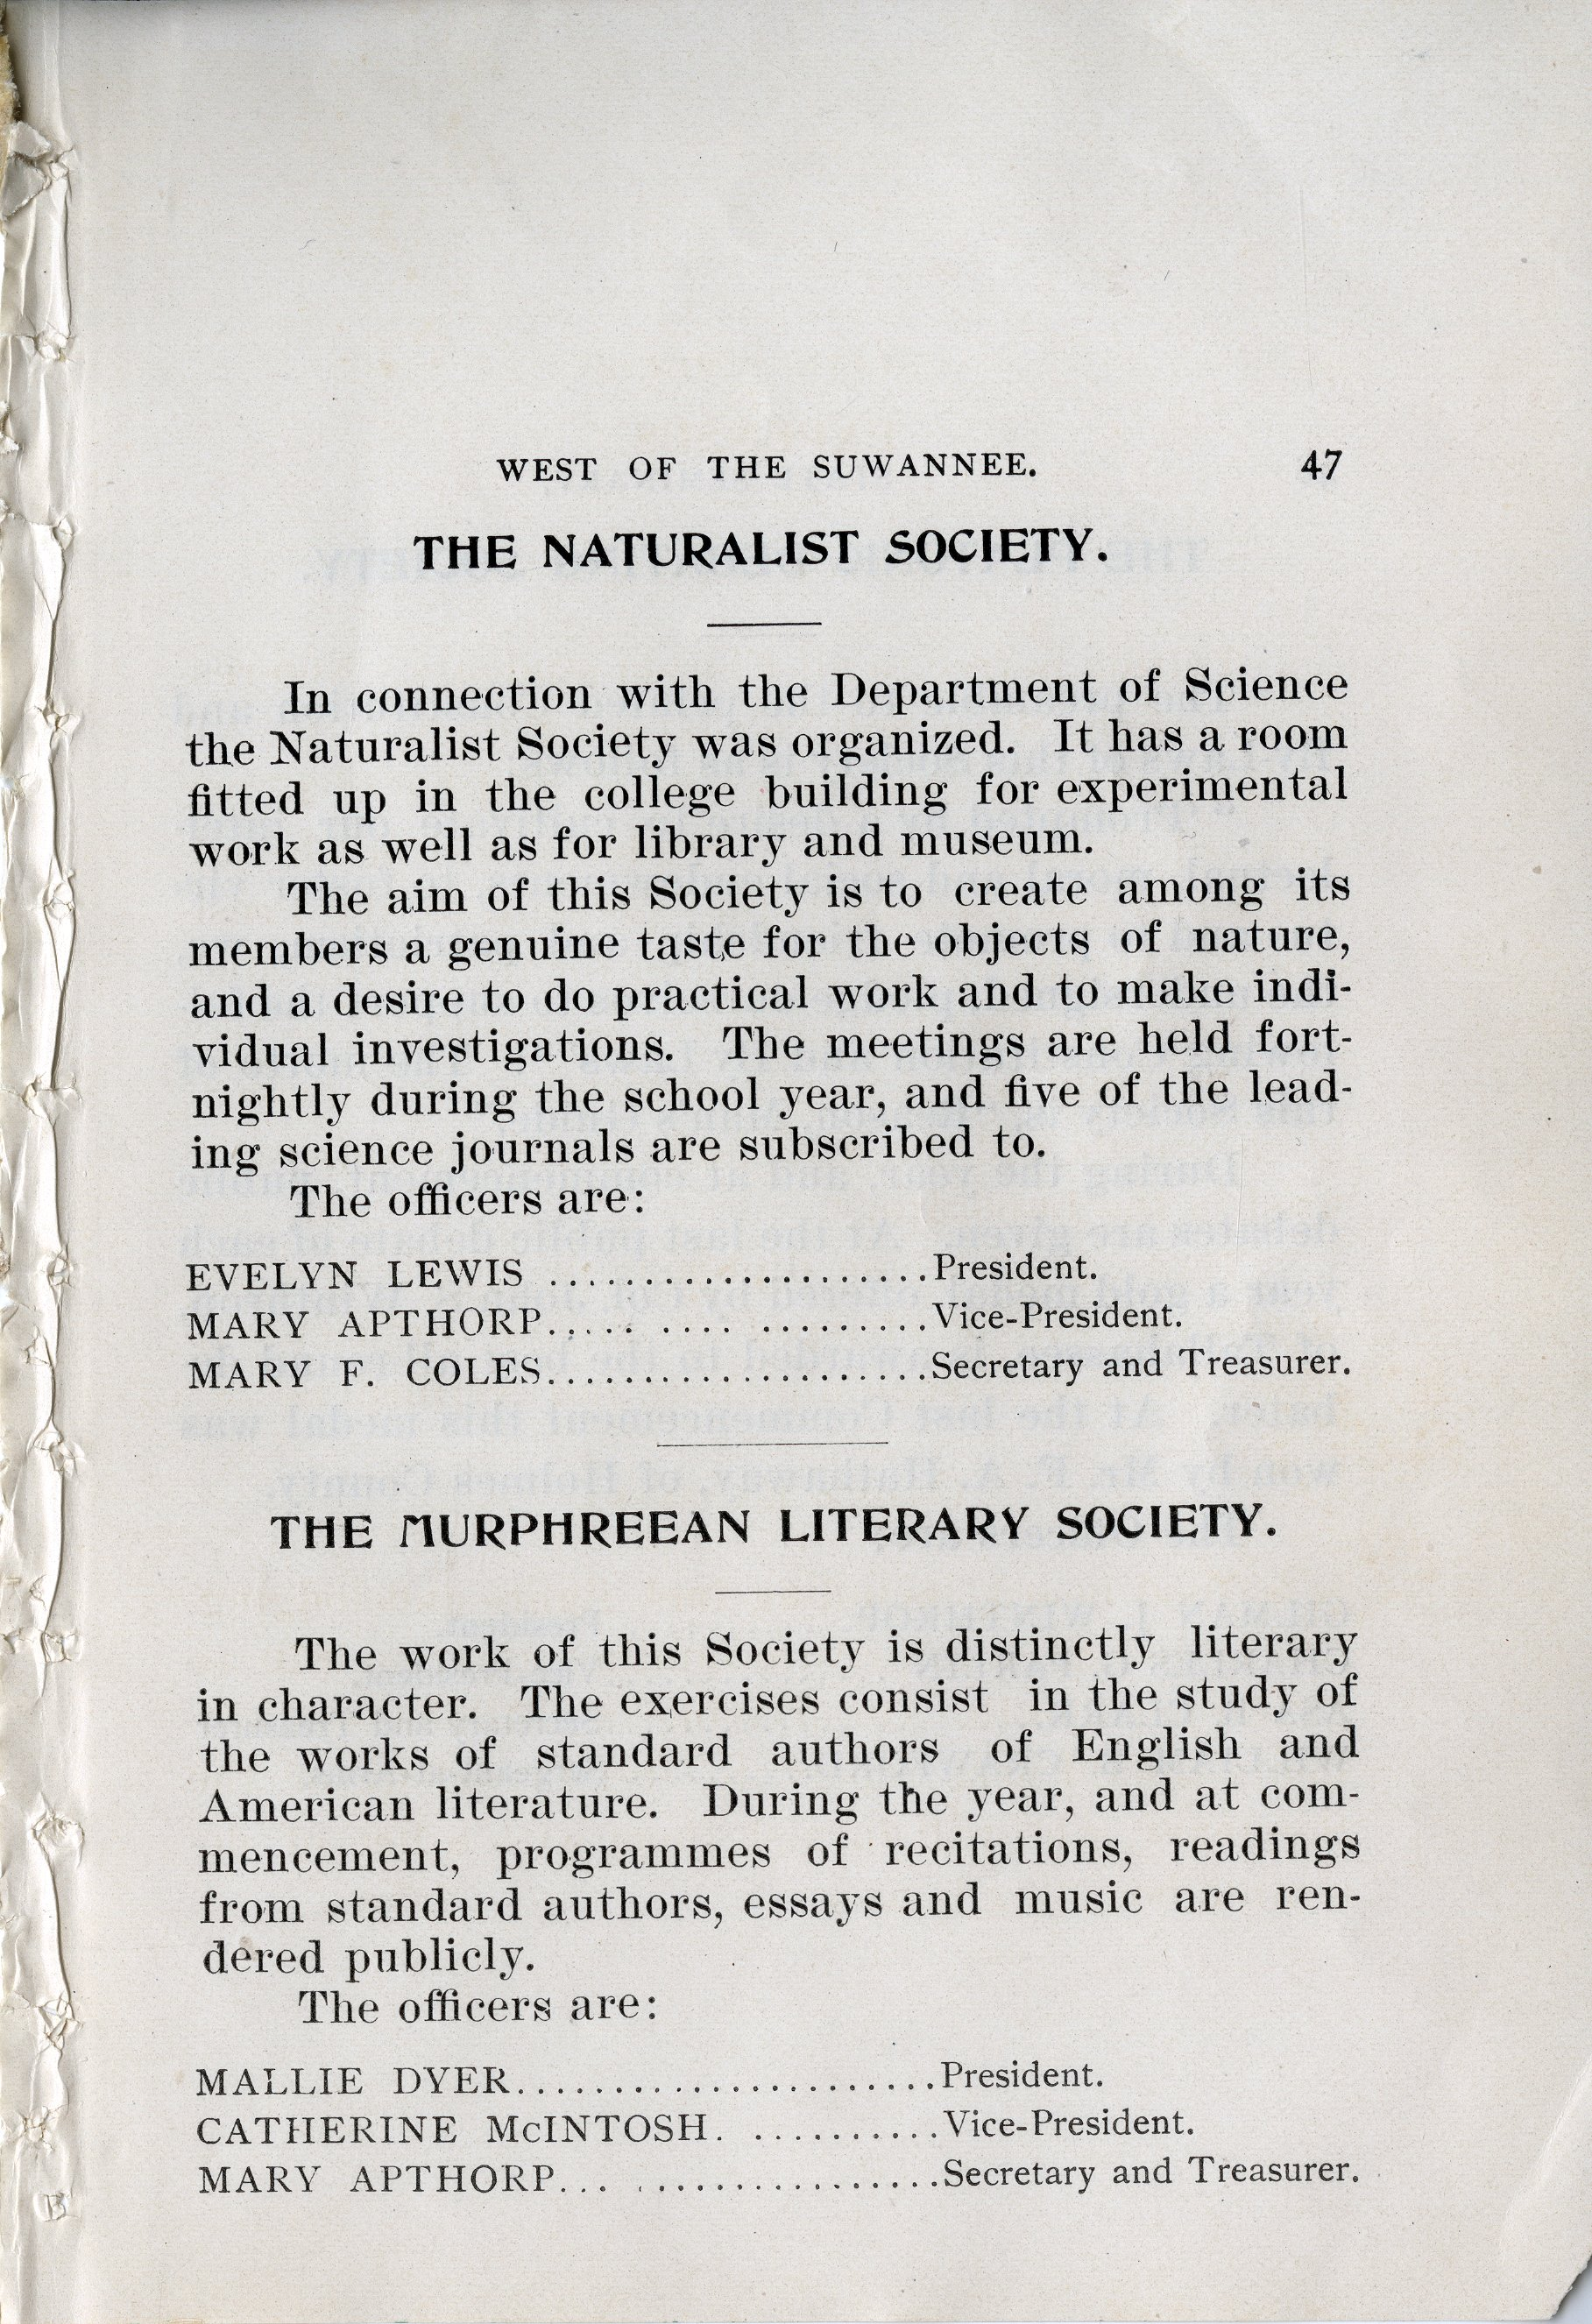 THE MURPHREEAN LITERARY SOCIETY